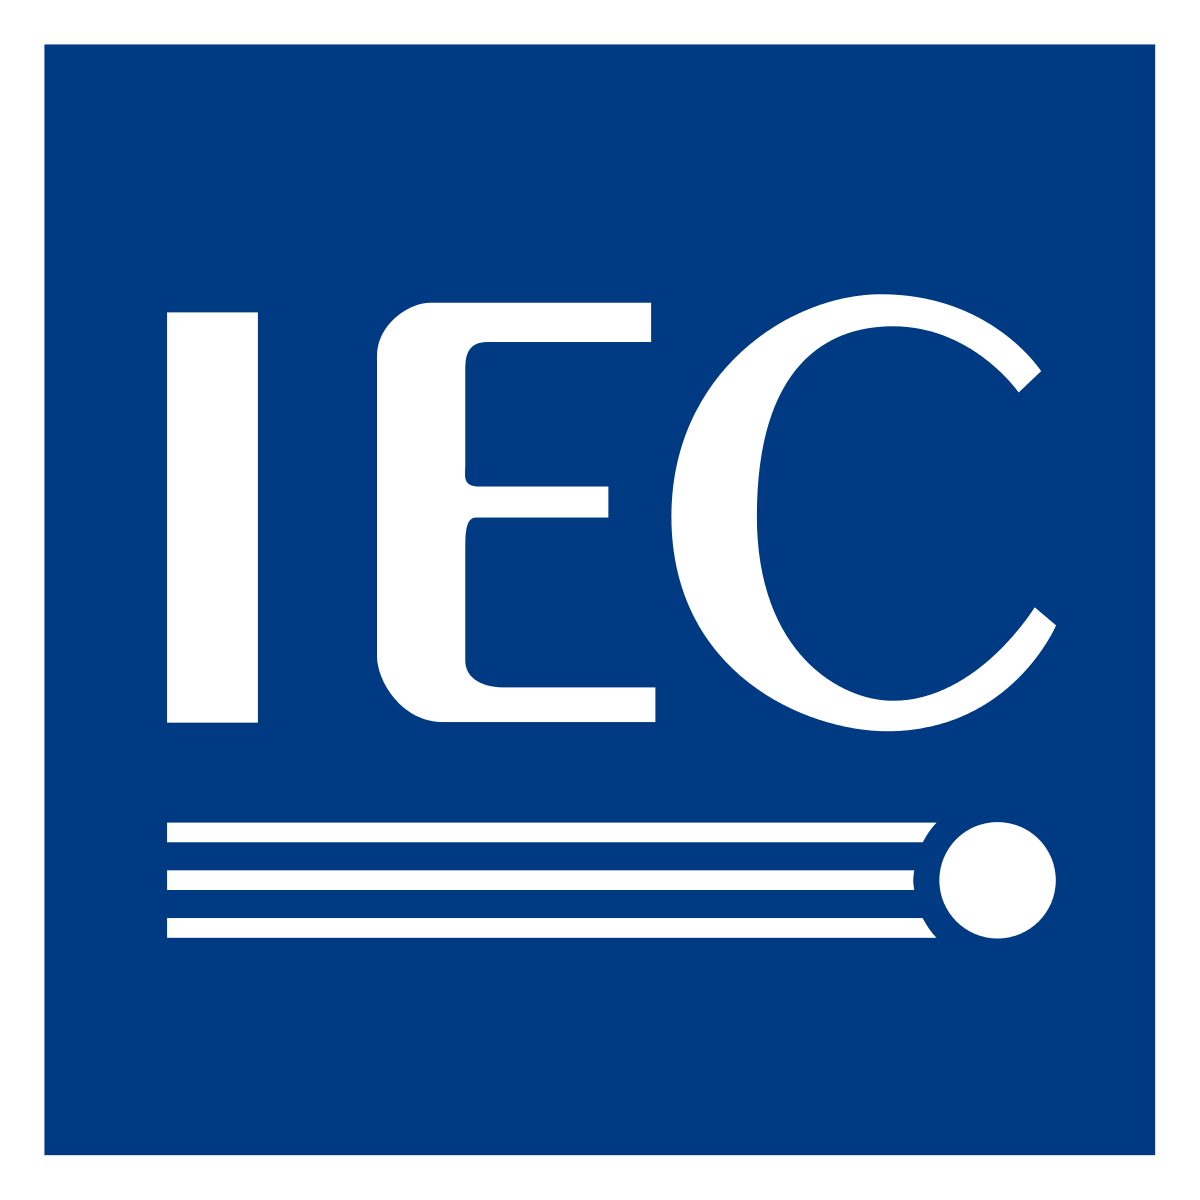 International Electrotechnical Commission.